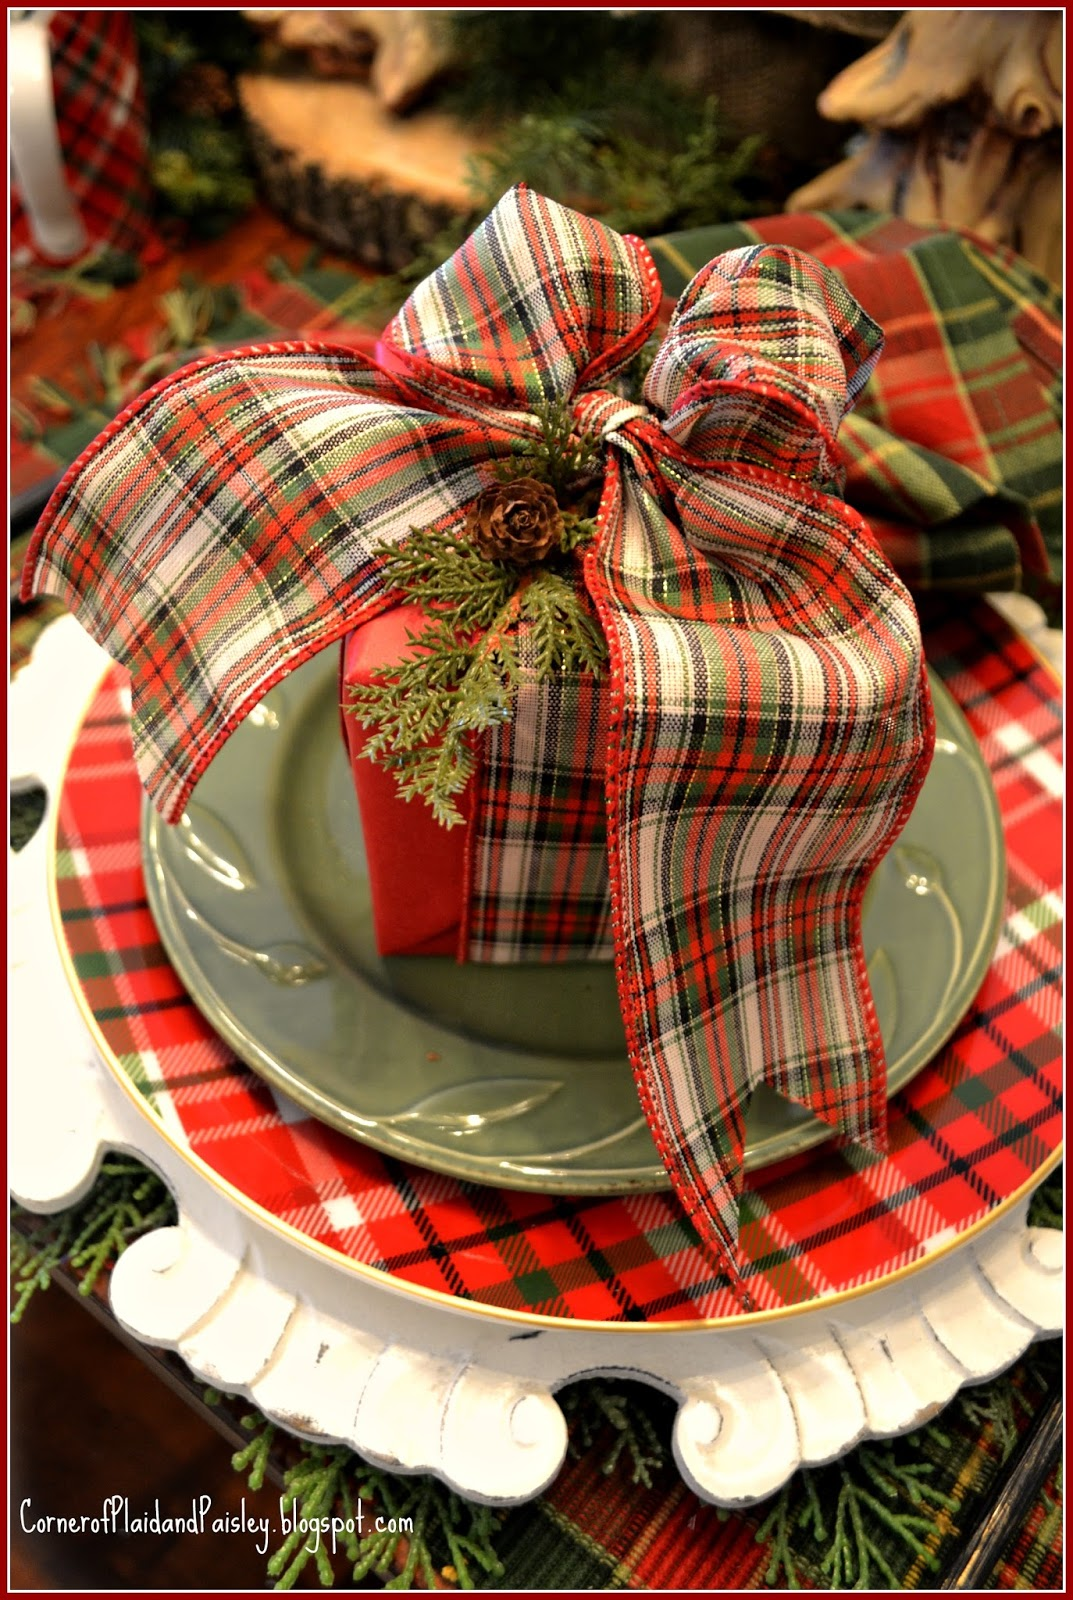 corner of plaid and paisley christmas table clad in plaid. Black Bedroom Furniture Sets. Home Design Ideas